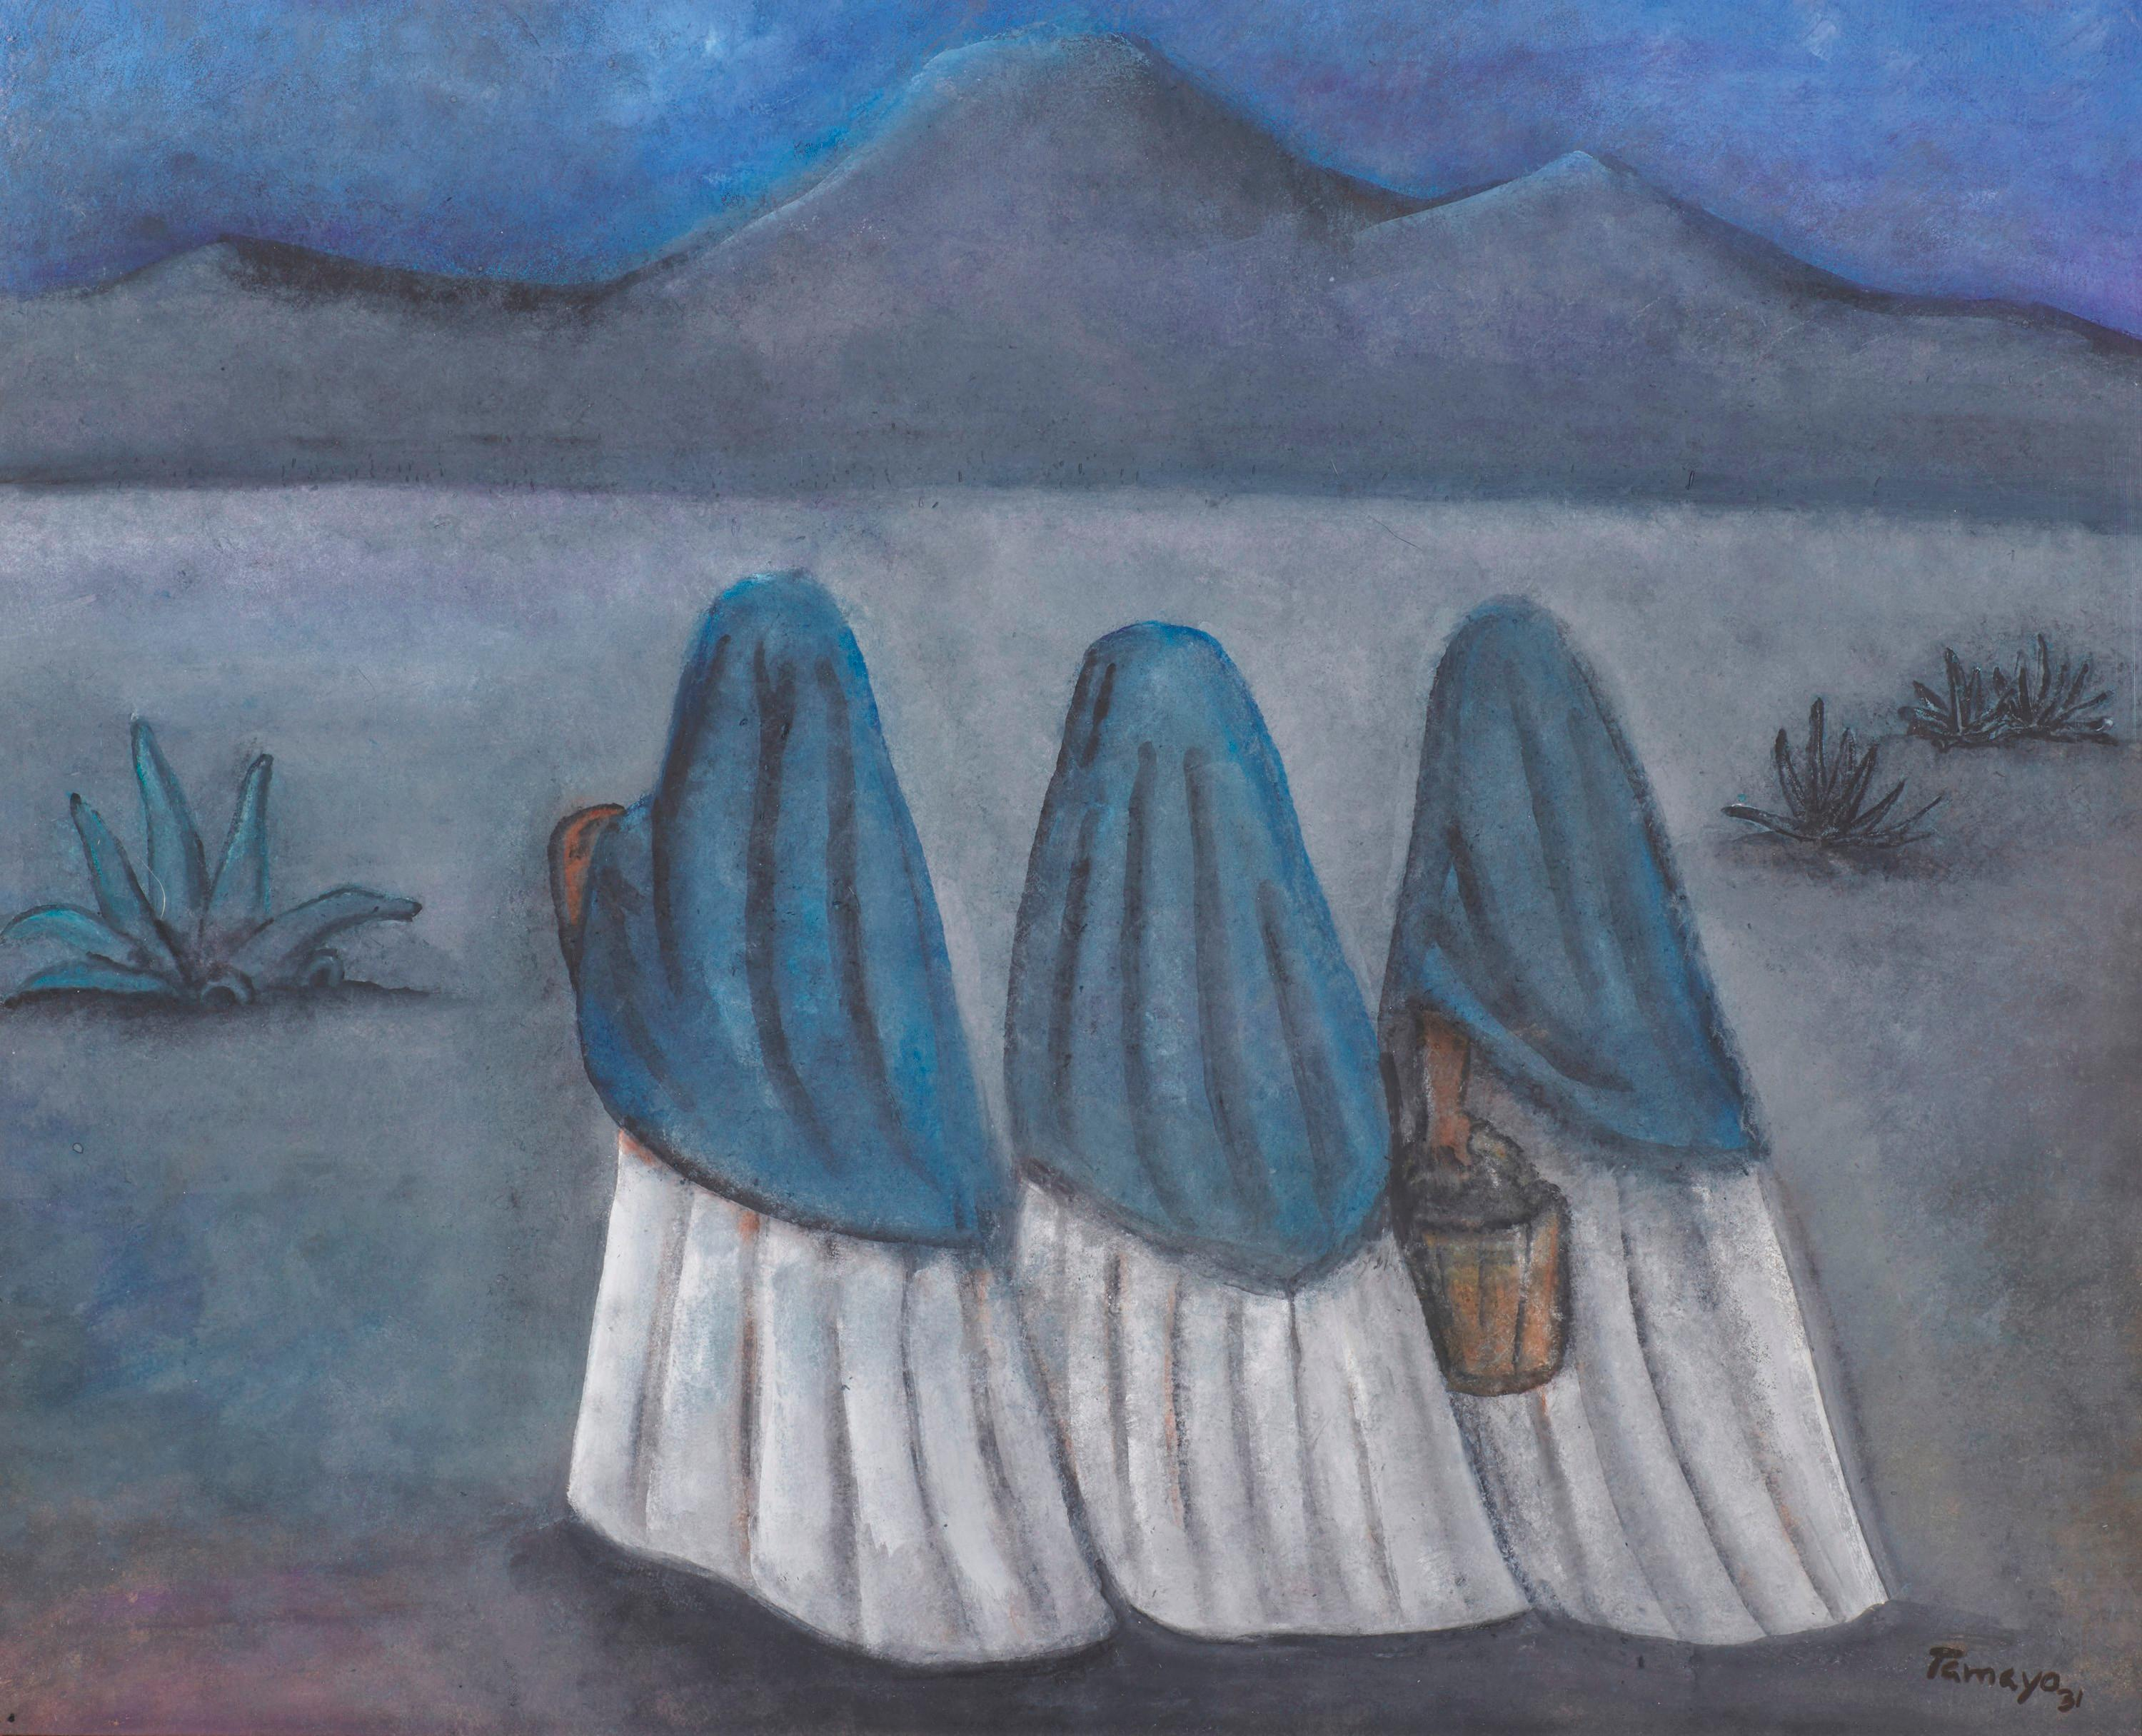 RUFINO TAMAYO, (Mexican, 1899-1991), Mujeres al Amanecer, 1931, pastel and gouache, sight: 15 1/2 x 19 1/2 in., frame: 30 x 34 in.